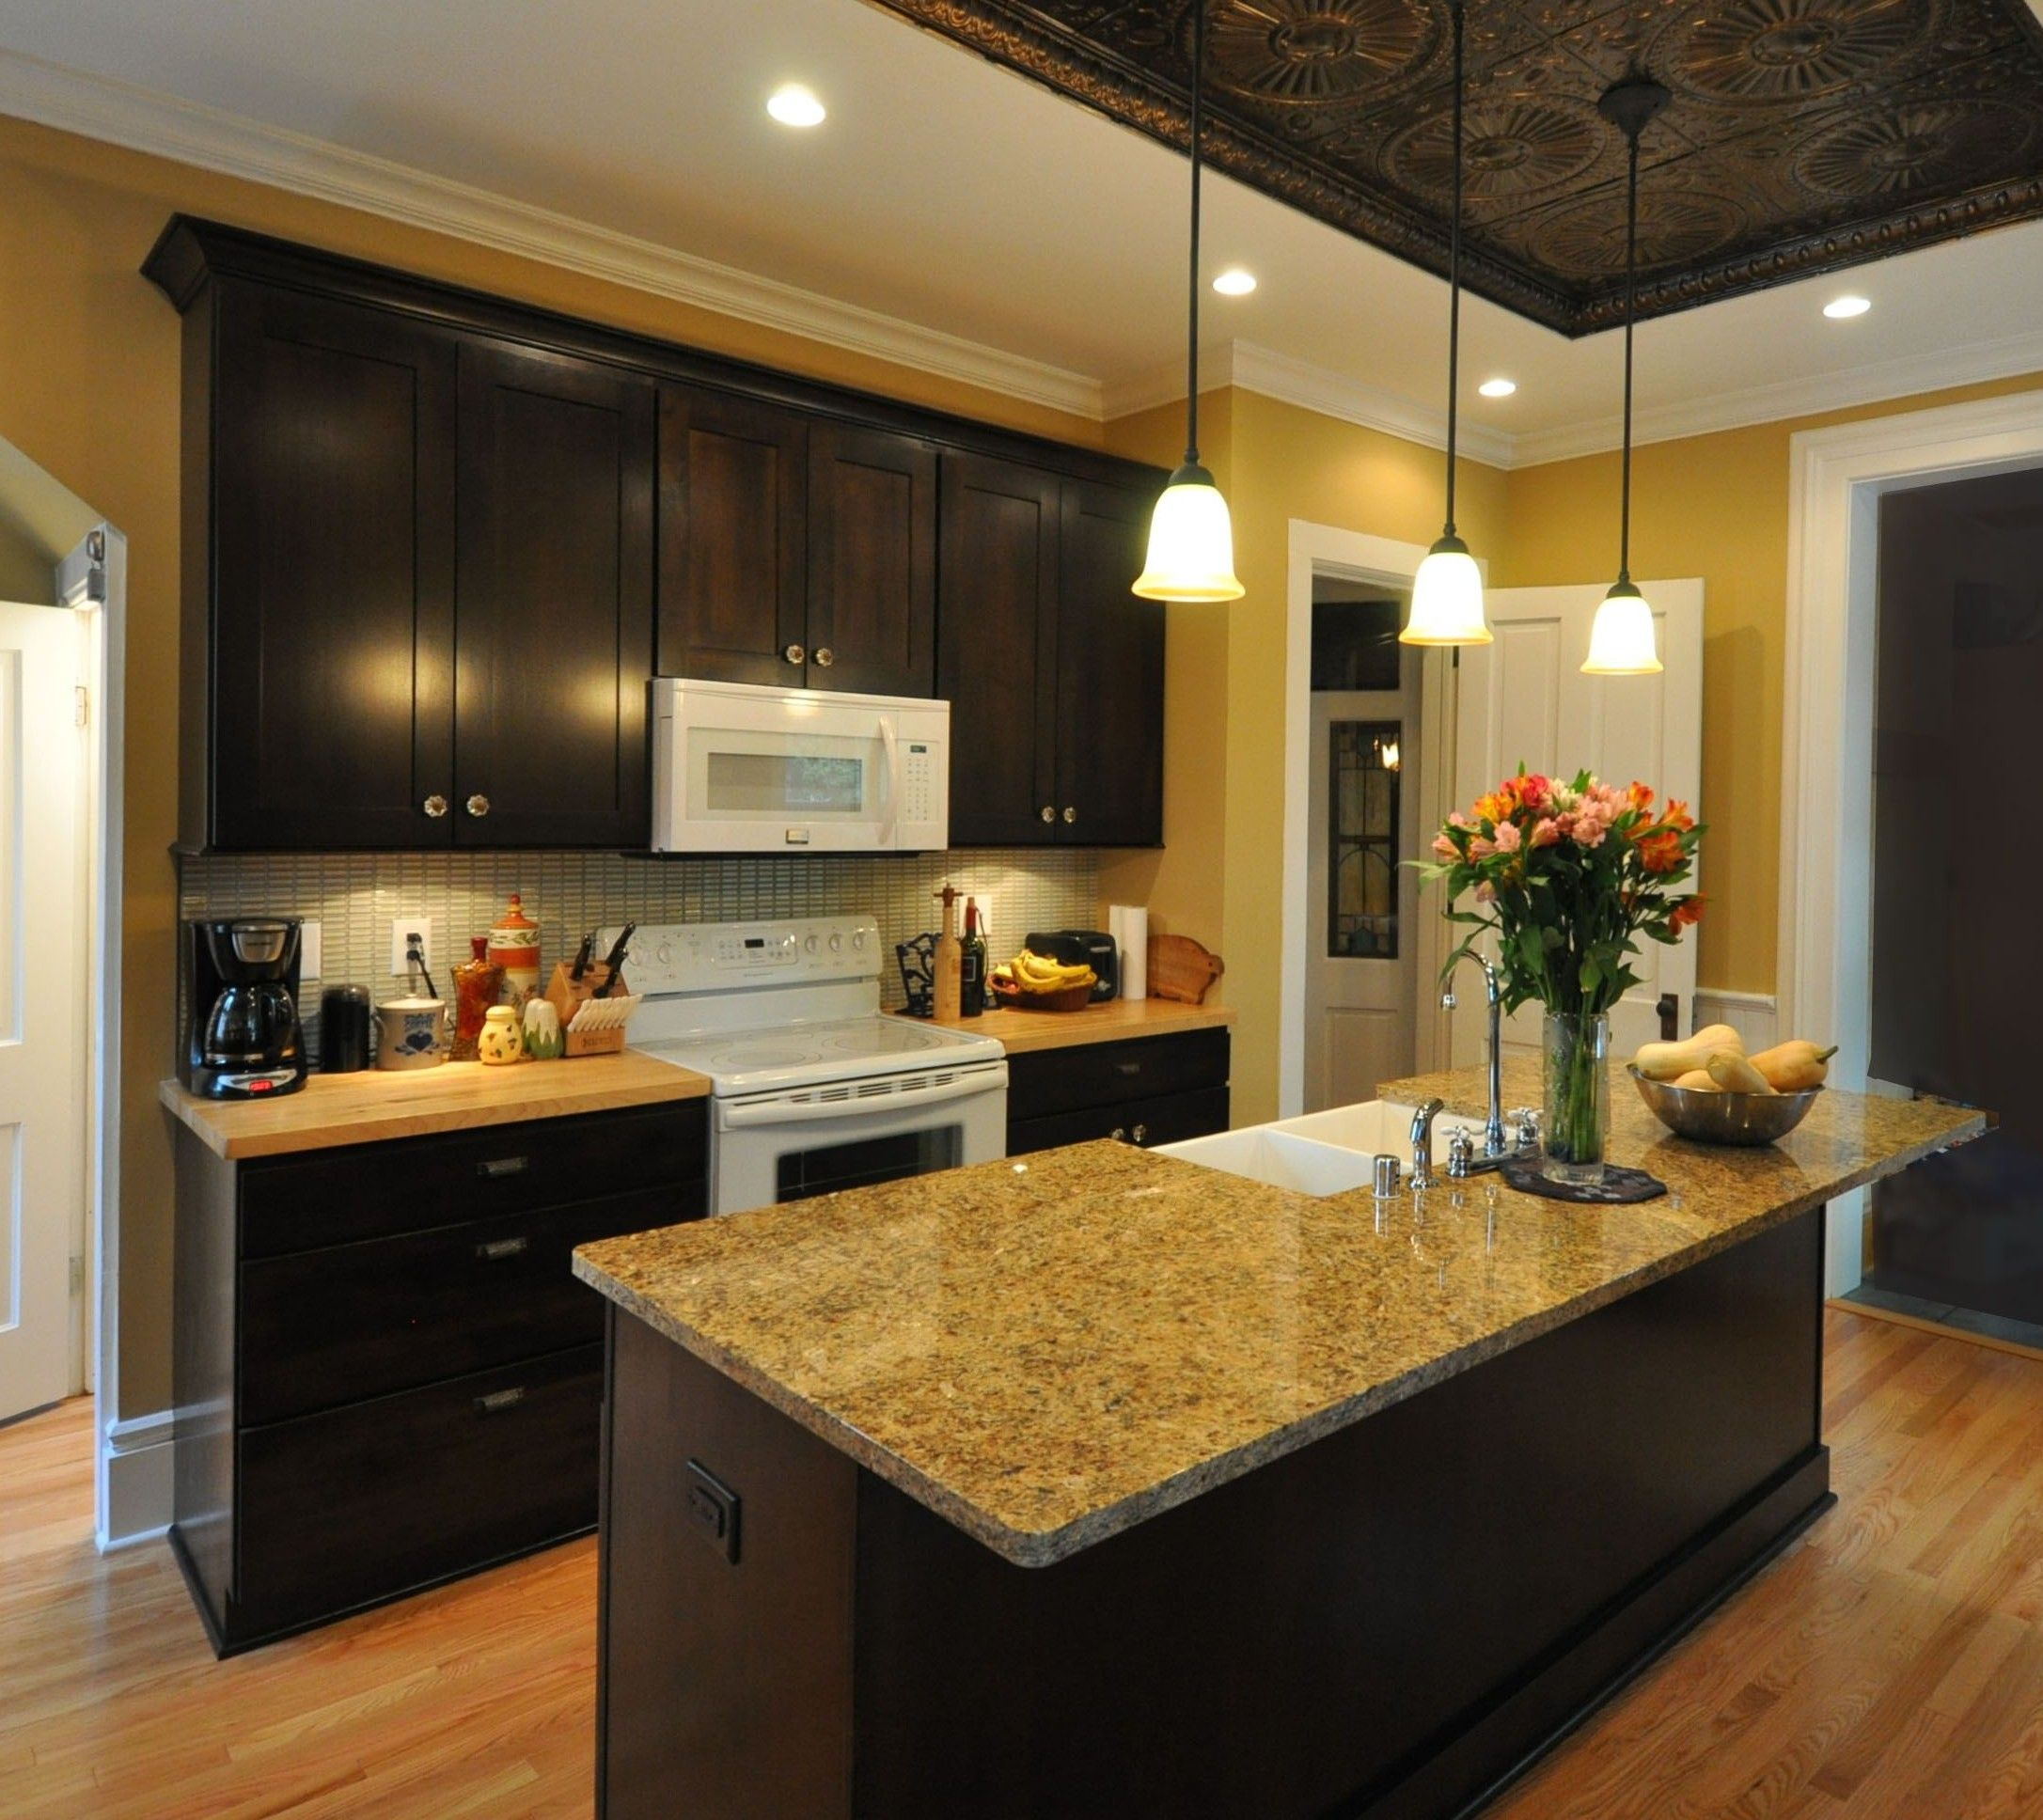 Brown Kitchen Cabinets: Countryside Cabinets Dark Brown Cabinets, Tan Granite, And